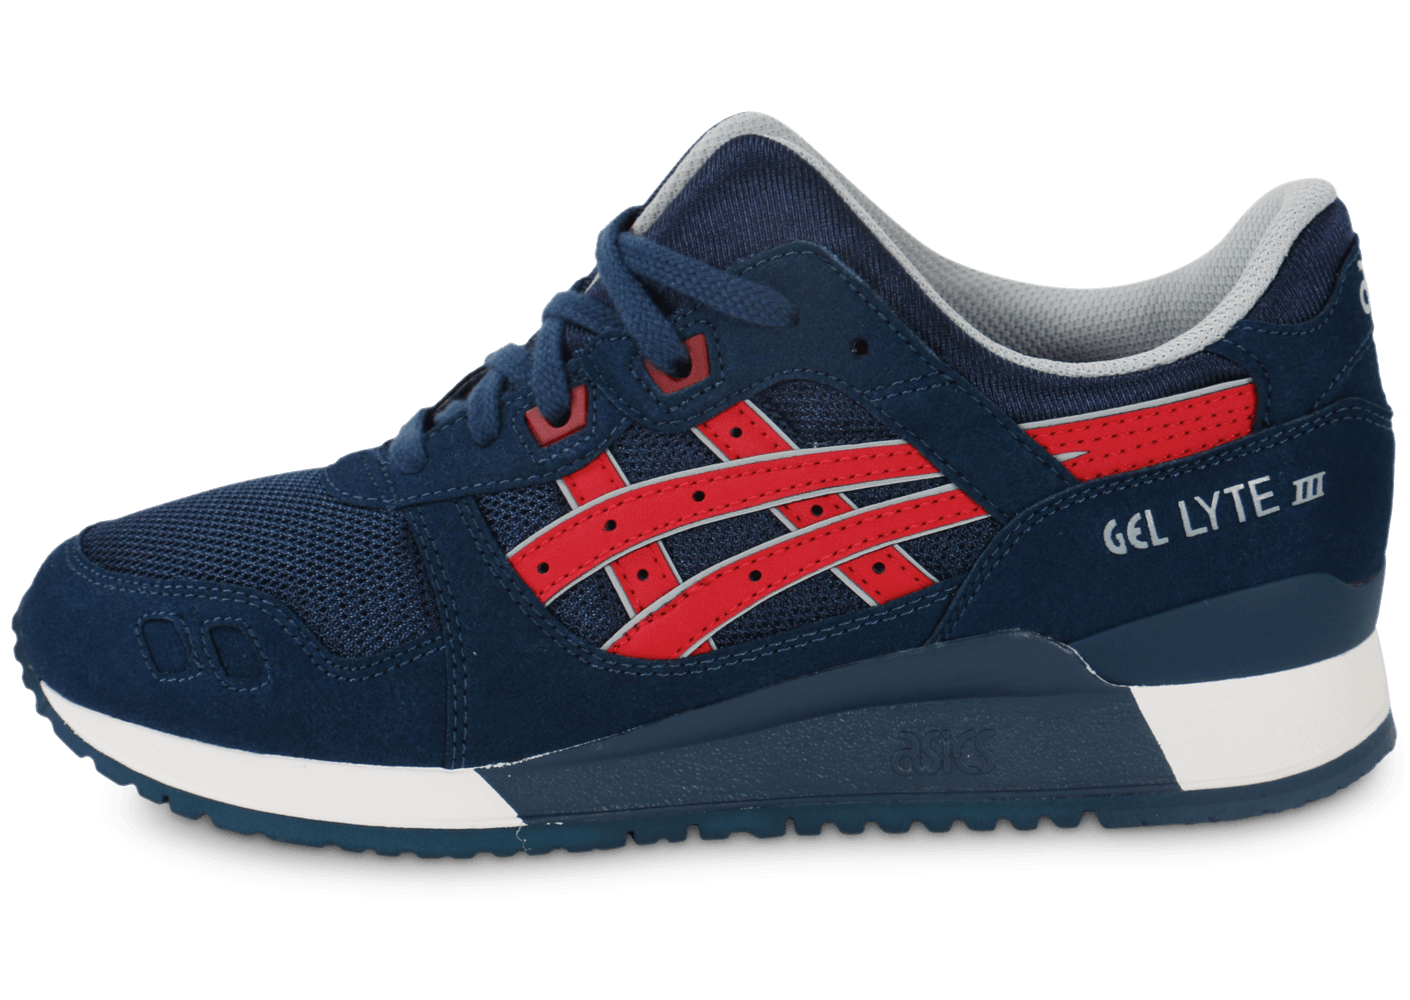 asics gel lyte 3 bleu marine et rouge chaussures baskets homme chausport. Black Bedroom Furniture Sets. Home Design Ideas